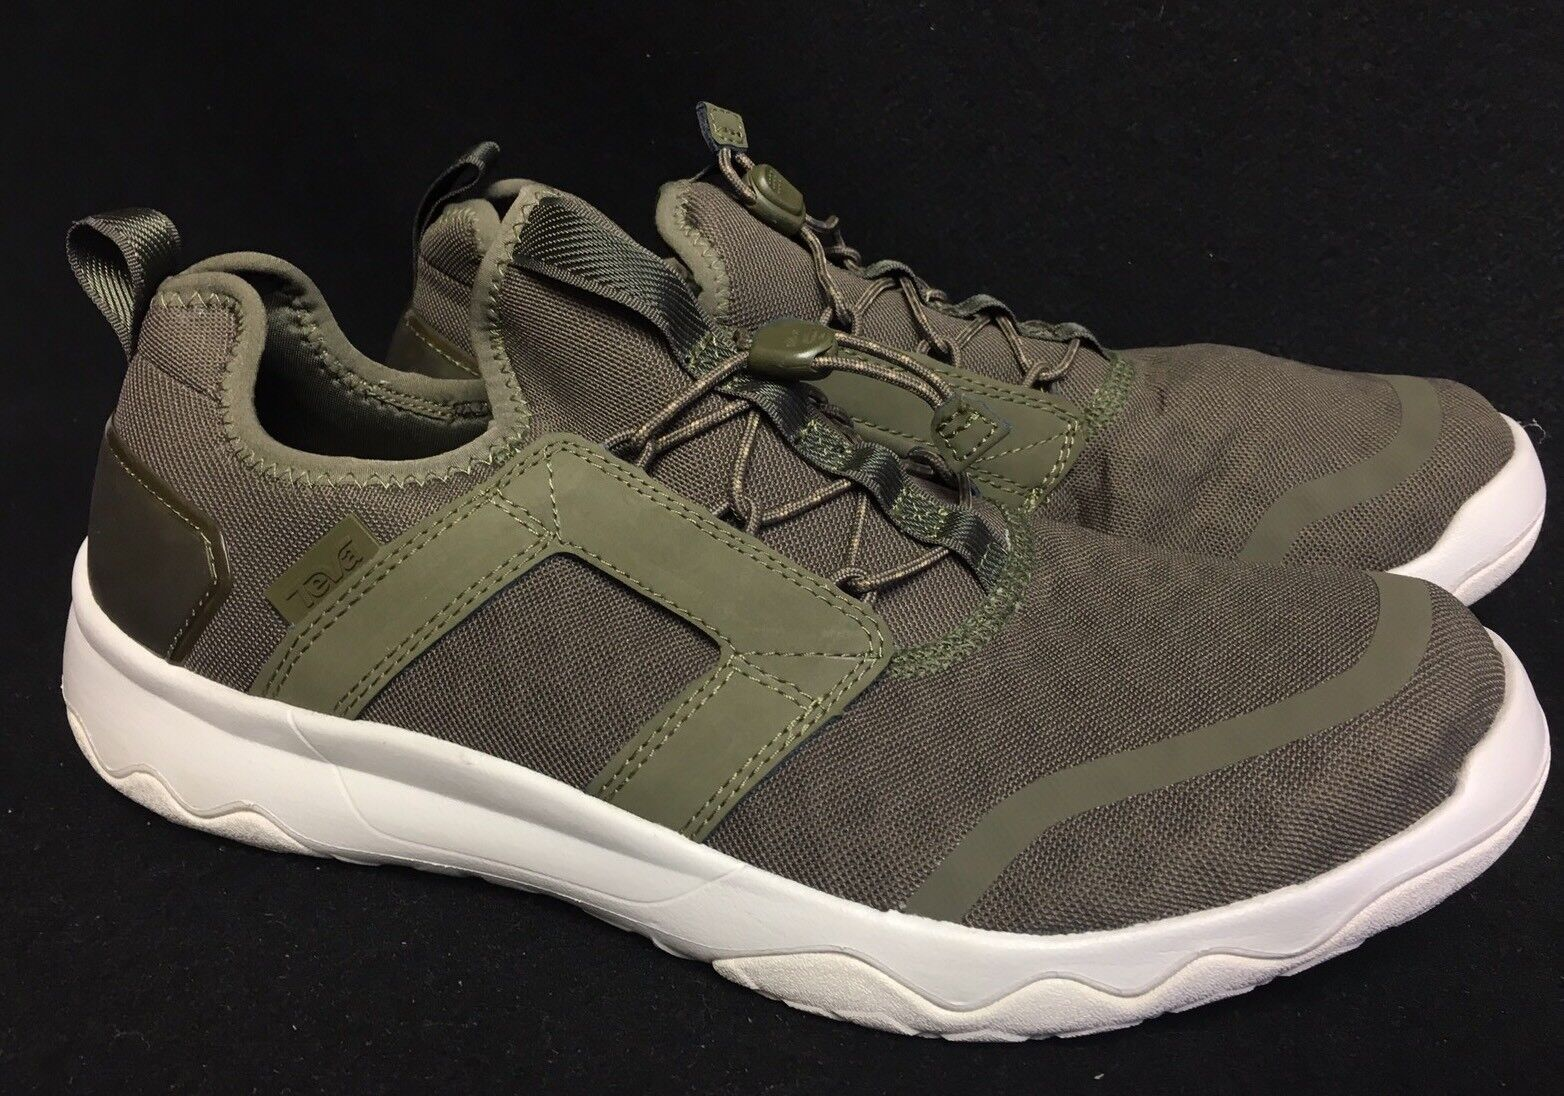 Teva Arrowood Swift Lace Sneaker 1017172 Mesh Leather Sizes Shoes Olive Green